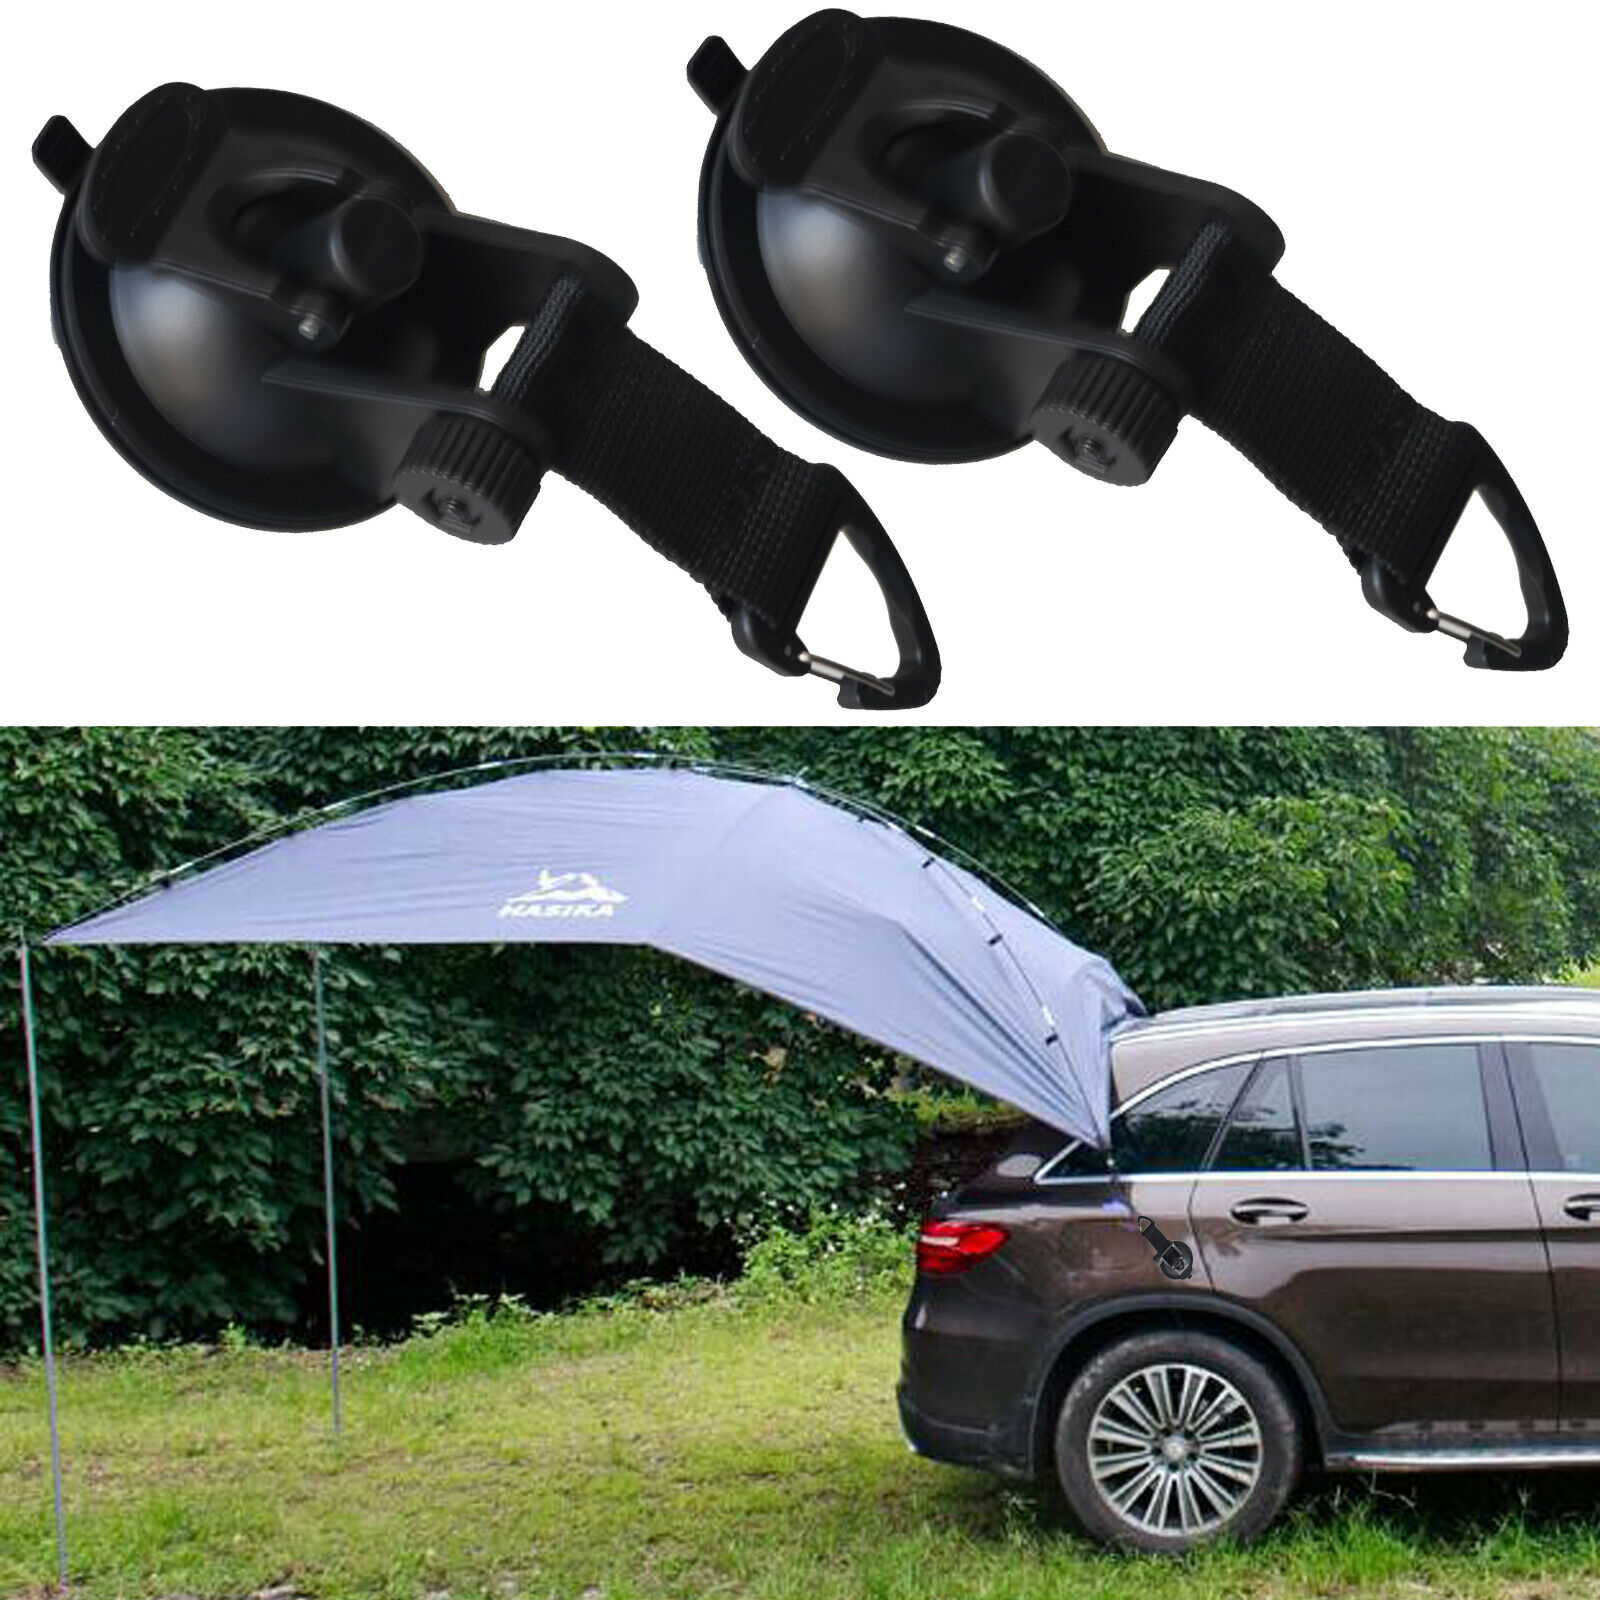 2pcs/lot Strong Suction Cup Anchor Securing Hook Tie Down,Camping Tarp as Car Side Awning